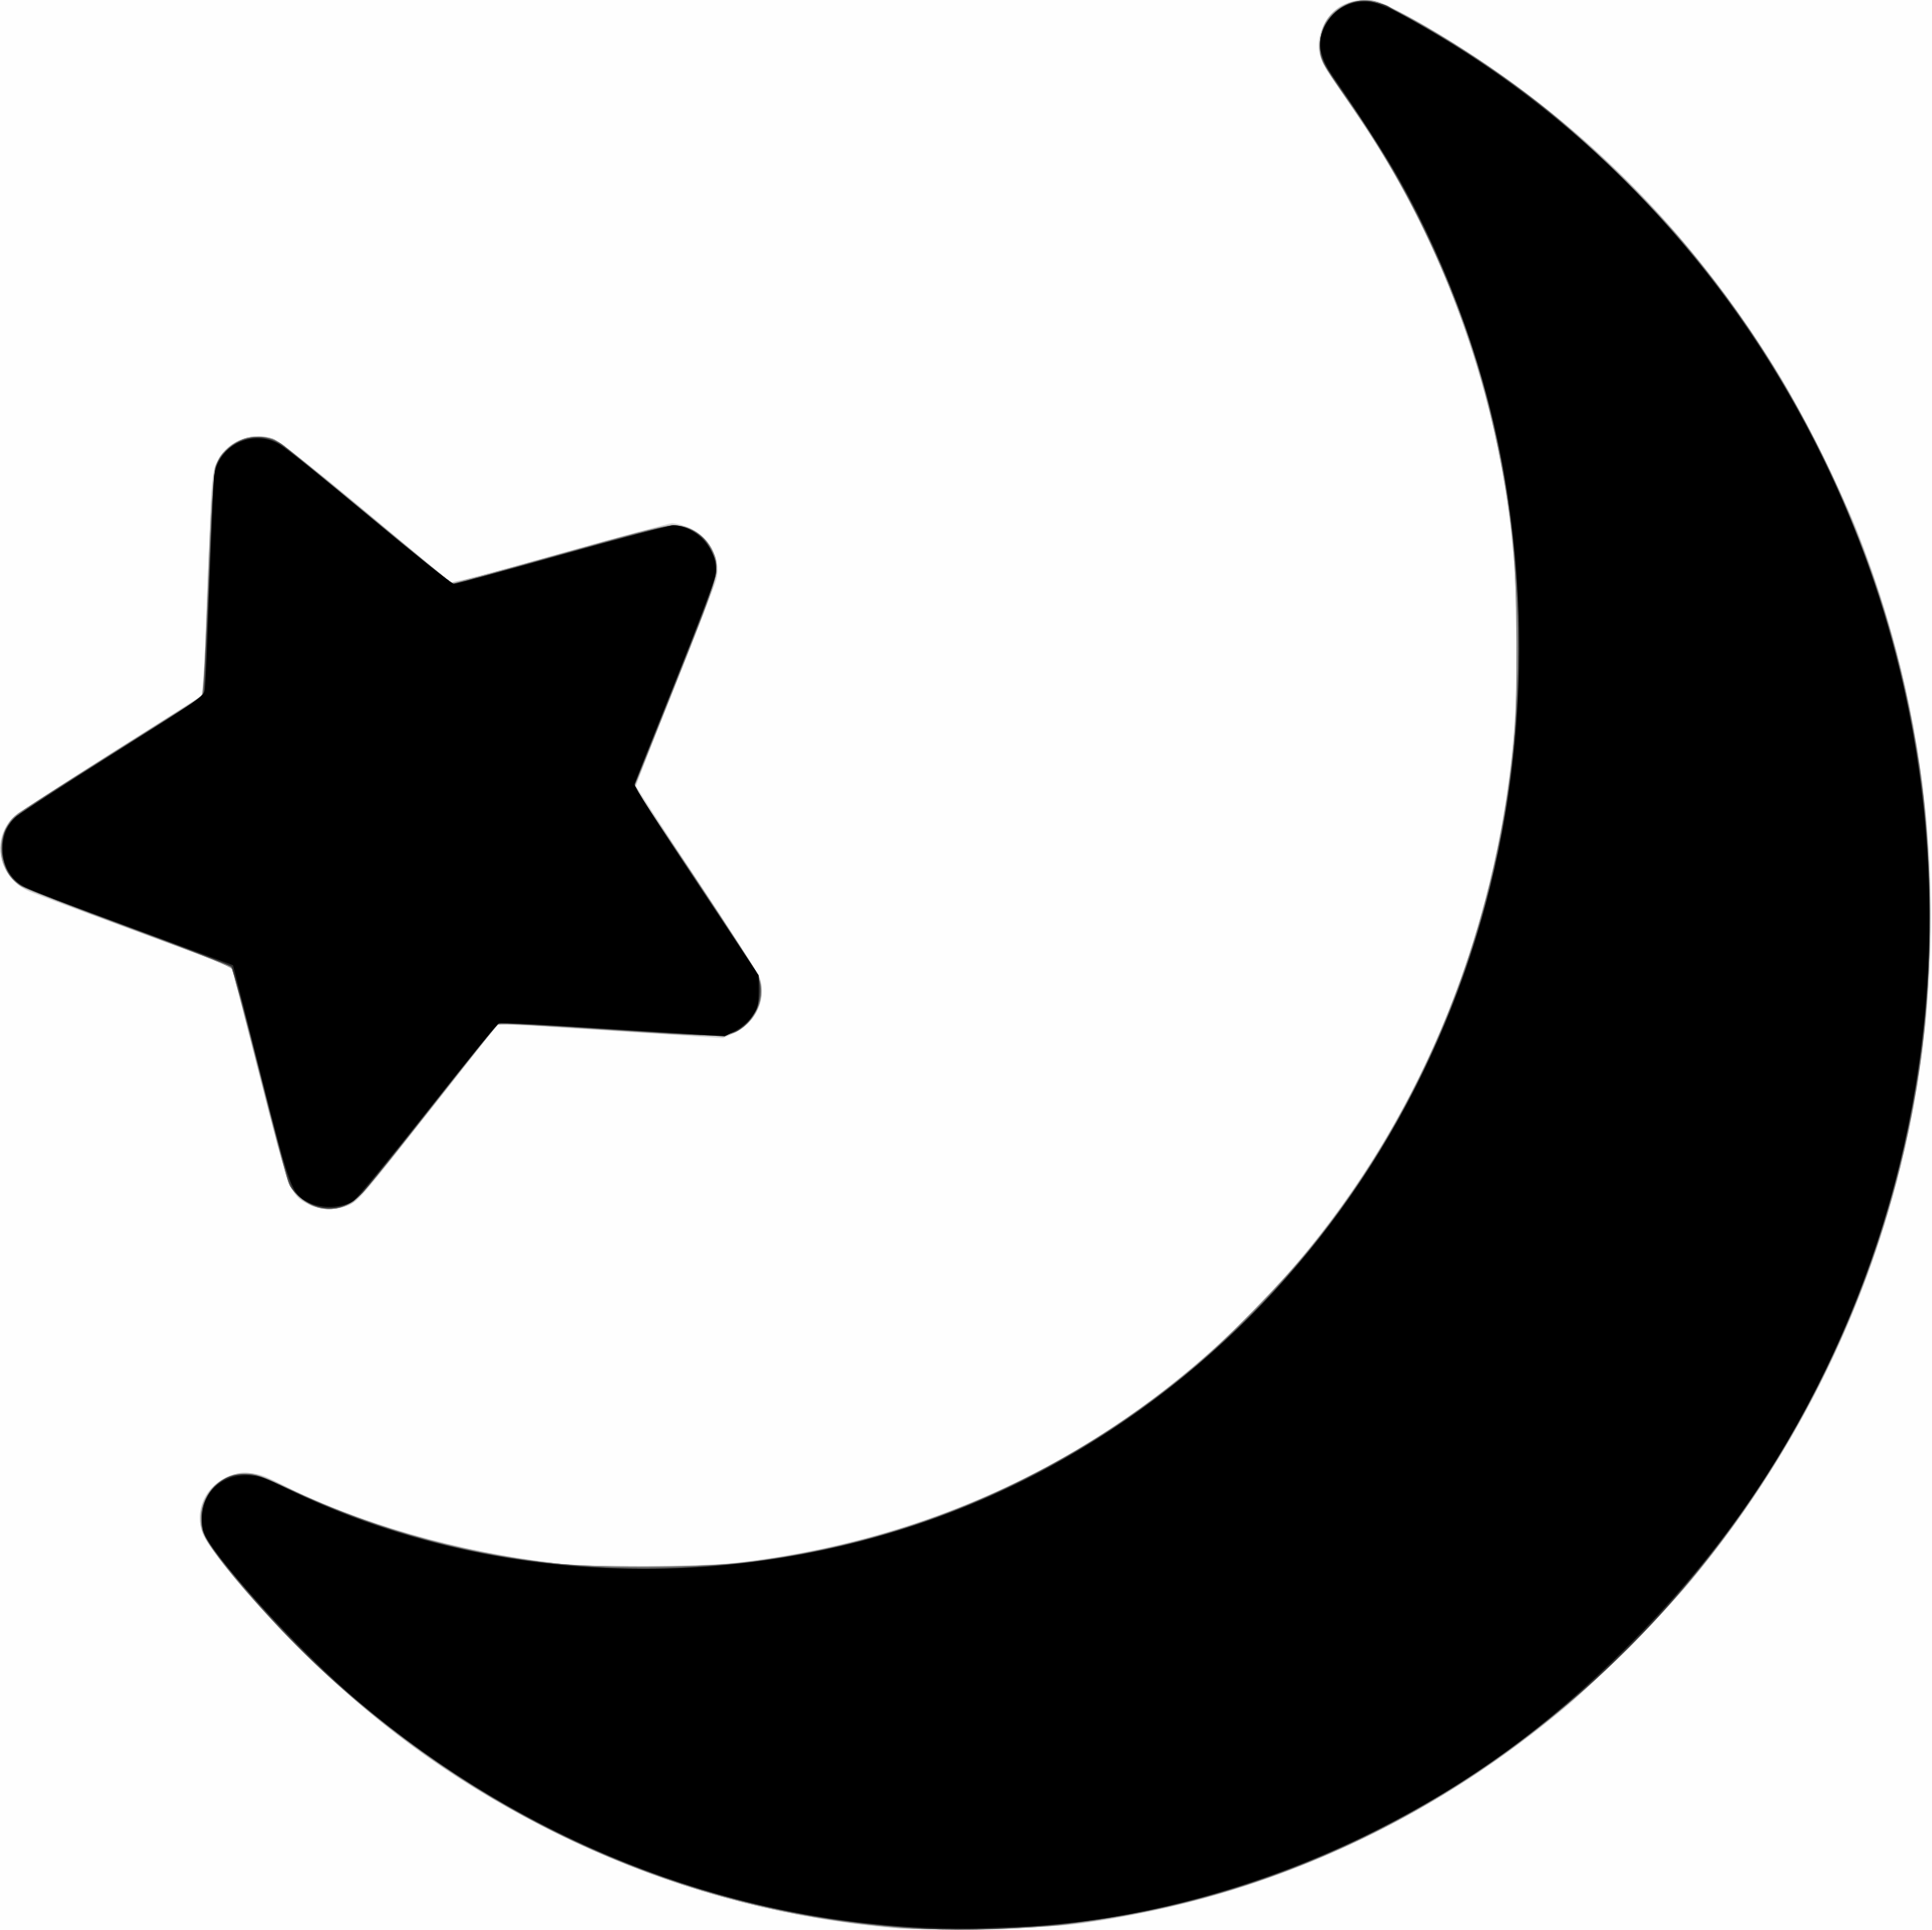 Black stars and moon clipart clipartfest.